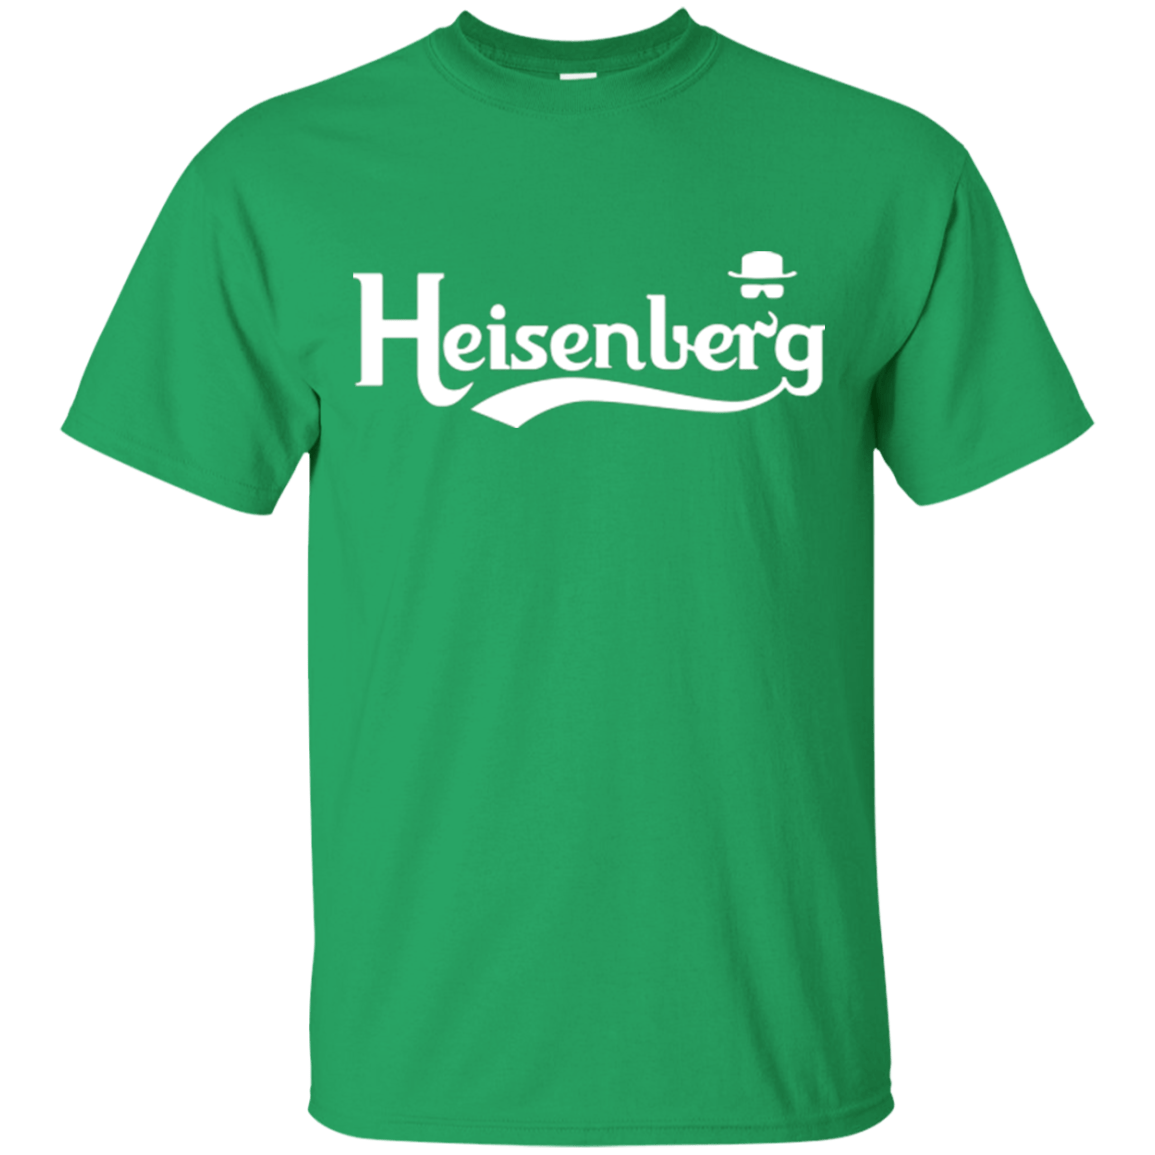 T-Shirts Irish Green / Small Heisenberg (1) T-Shirt